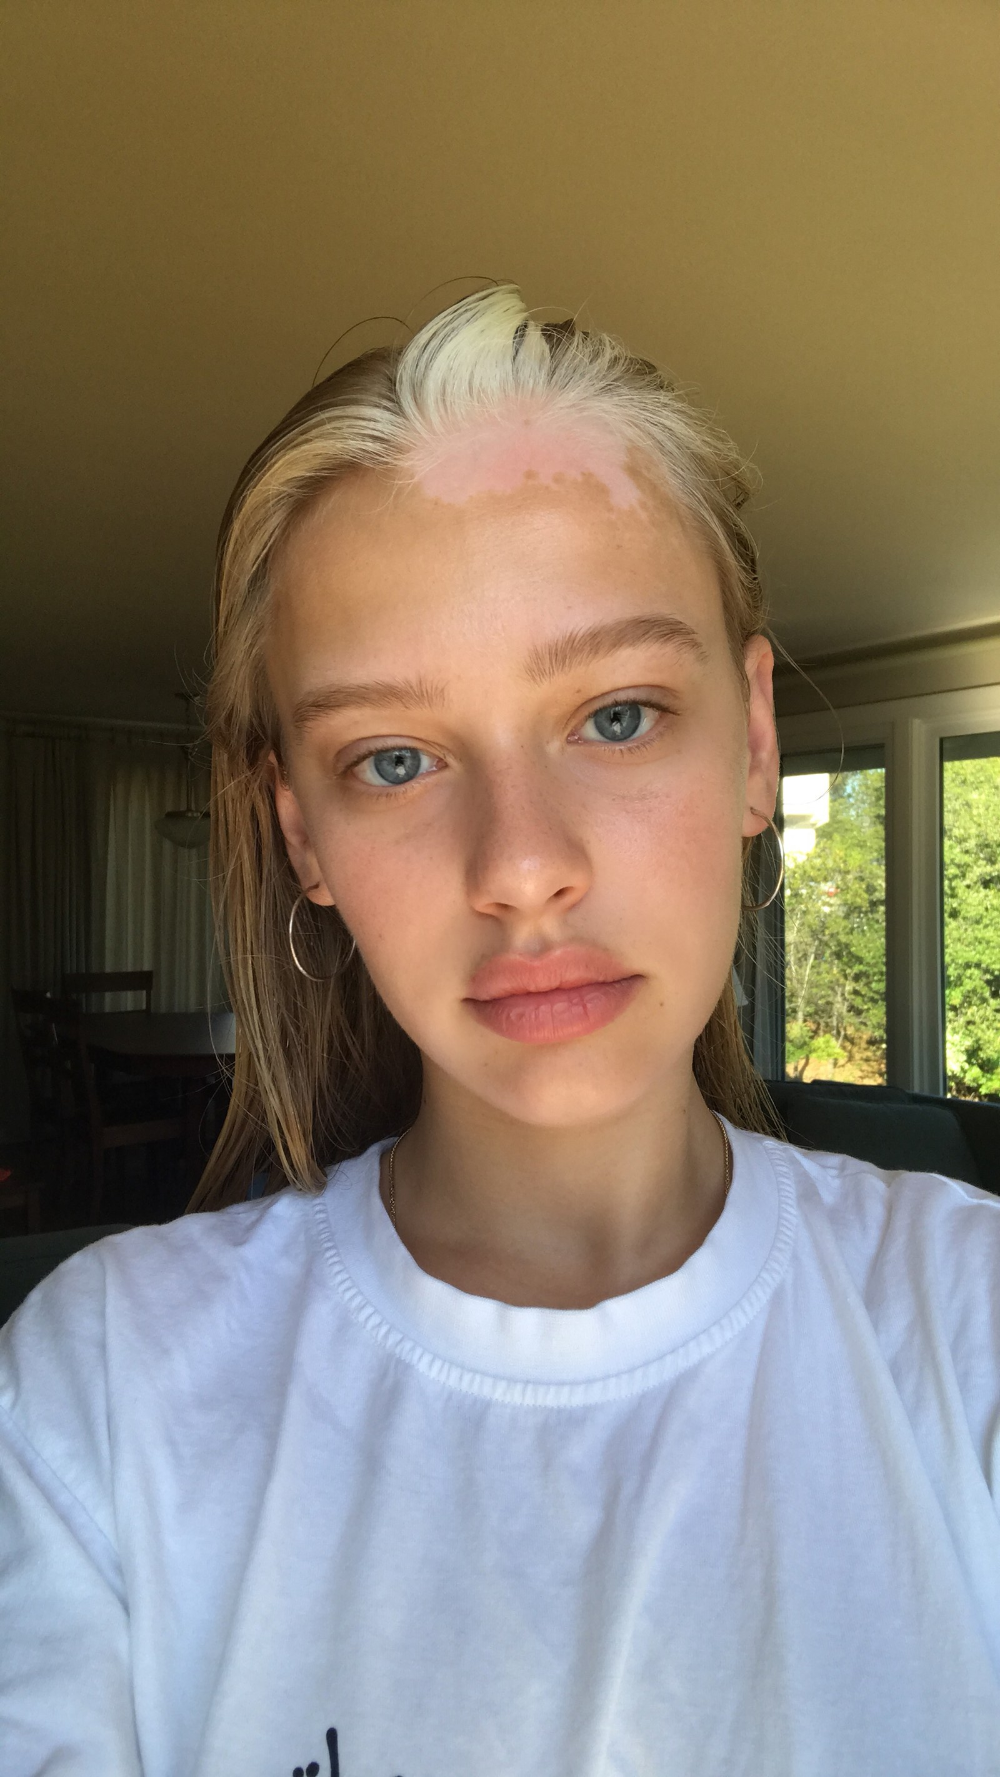 Vogueworld Meet Tia Jonsson The Rihanna Approved Model Who Wears Her Vitiligo With Pride Vogue Vitiligo Model Vitiligo Vitiligo Cure